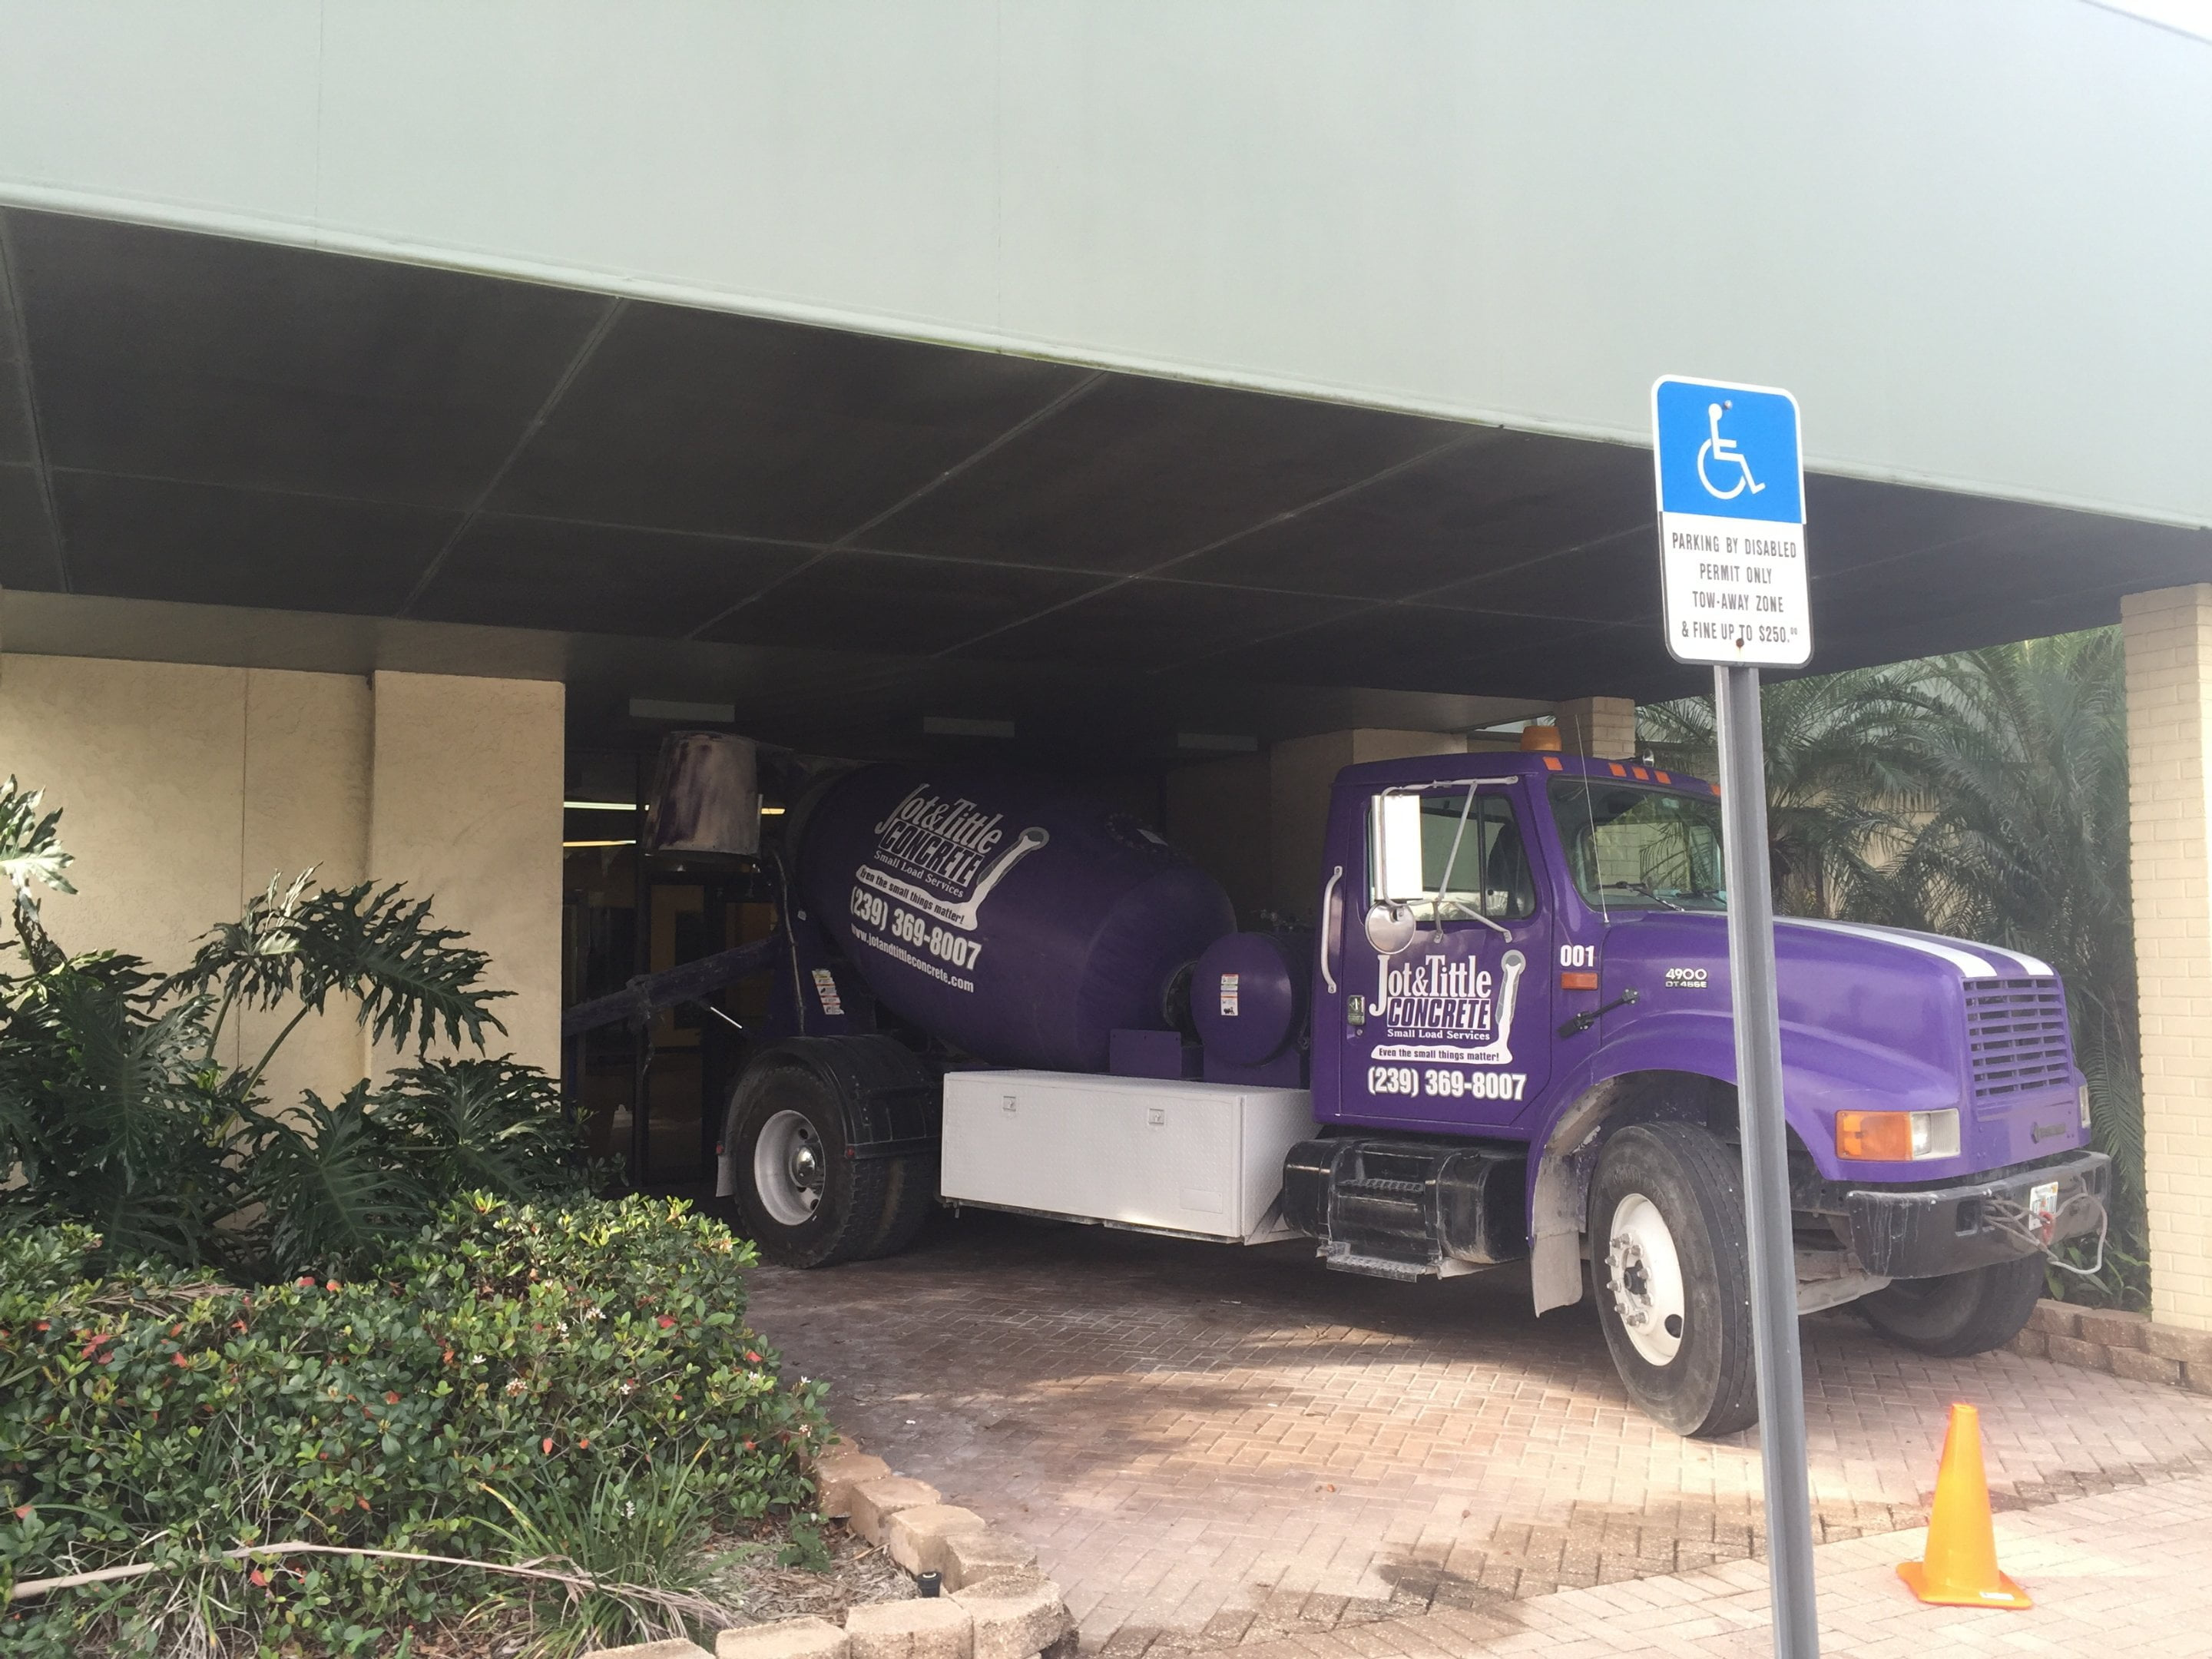 jot and tittle truck under building